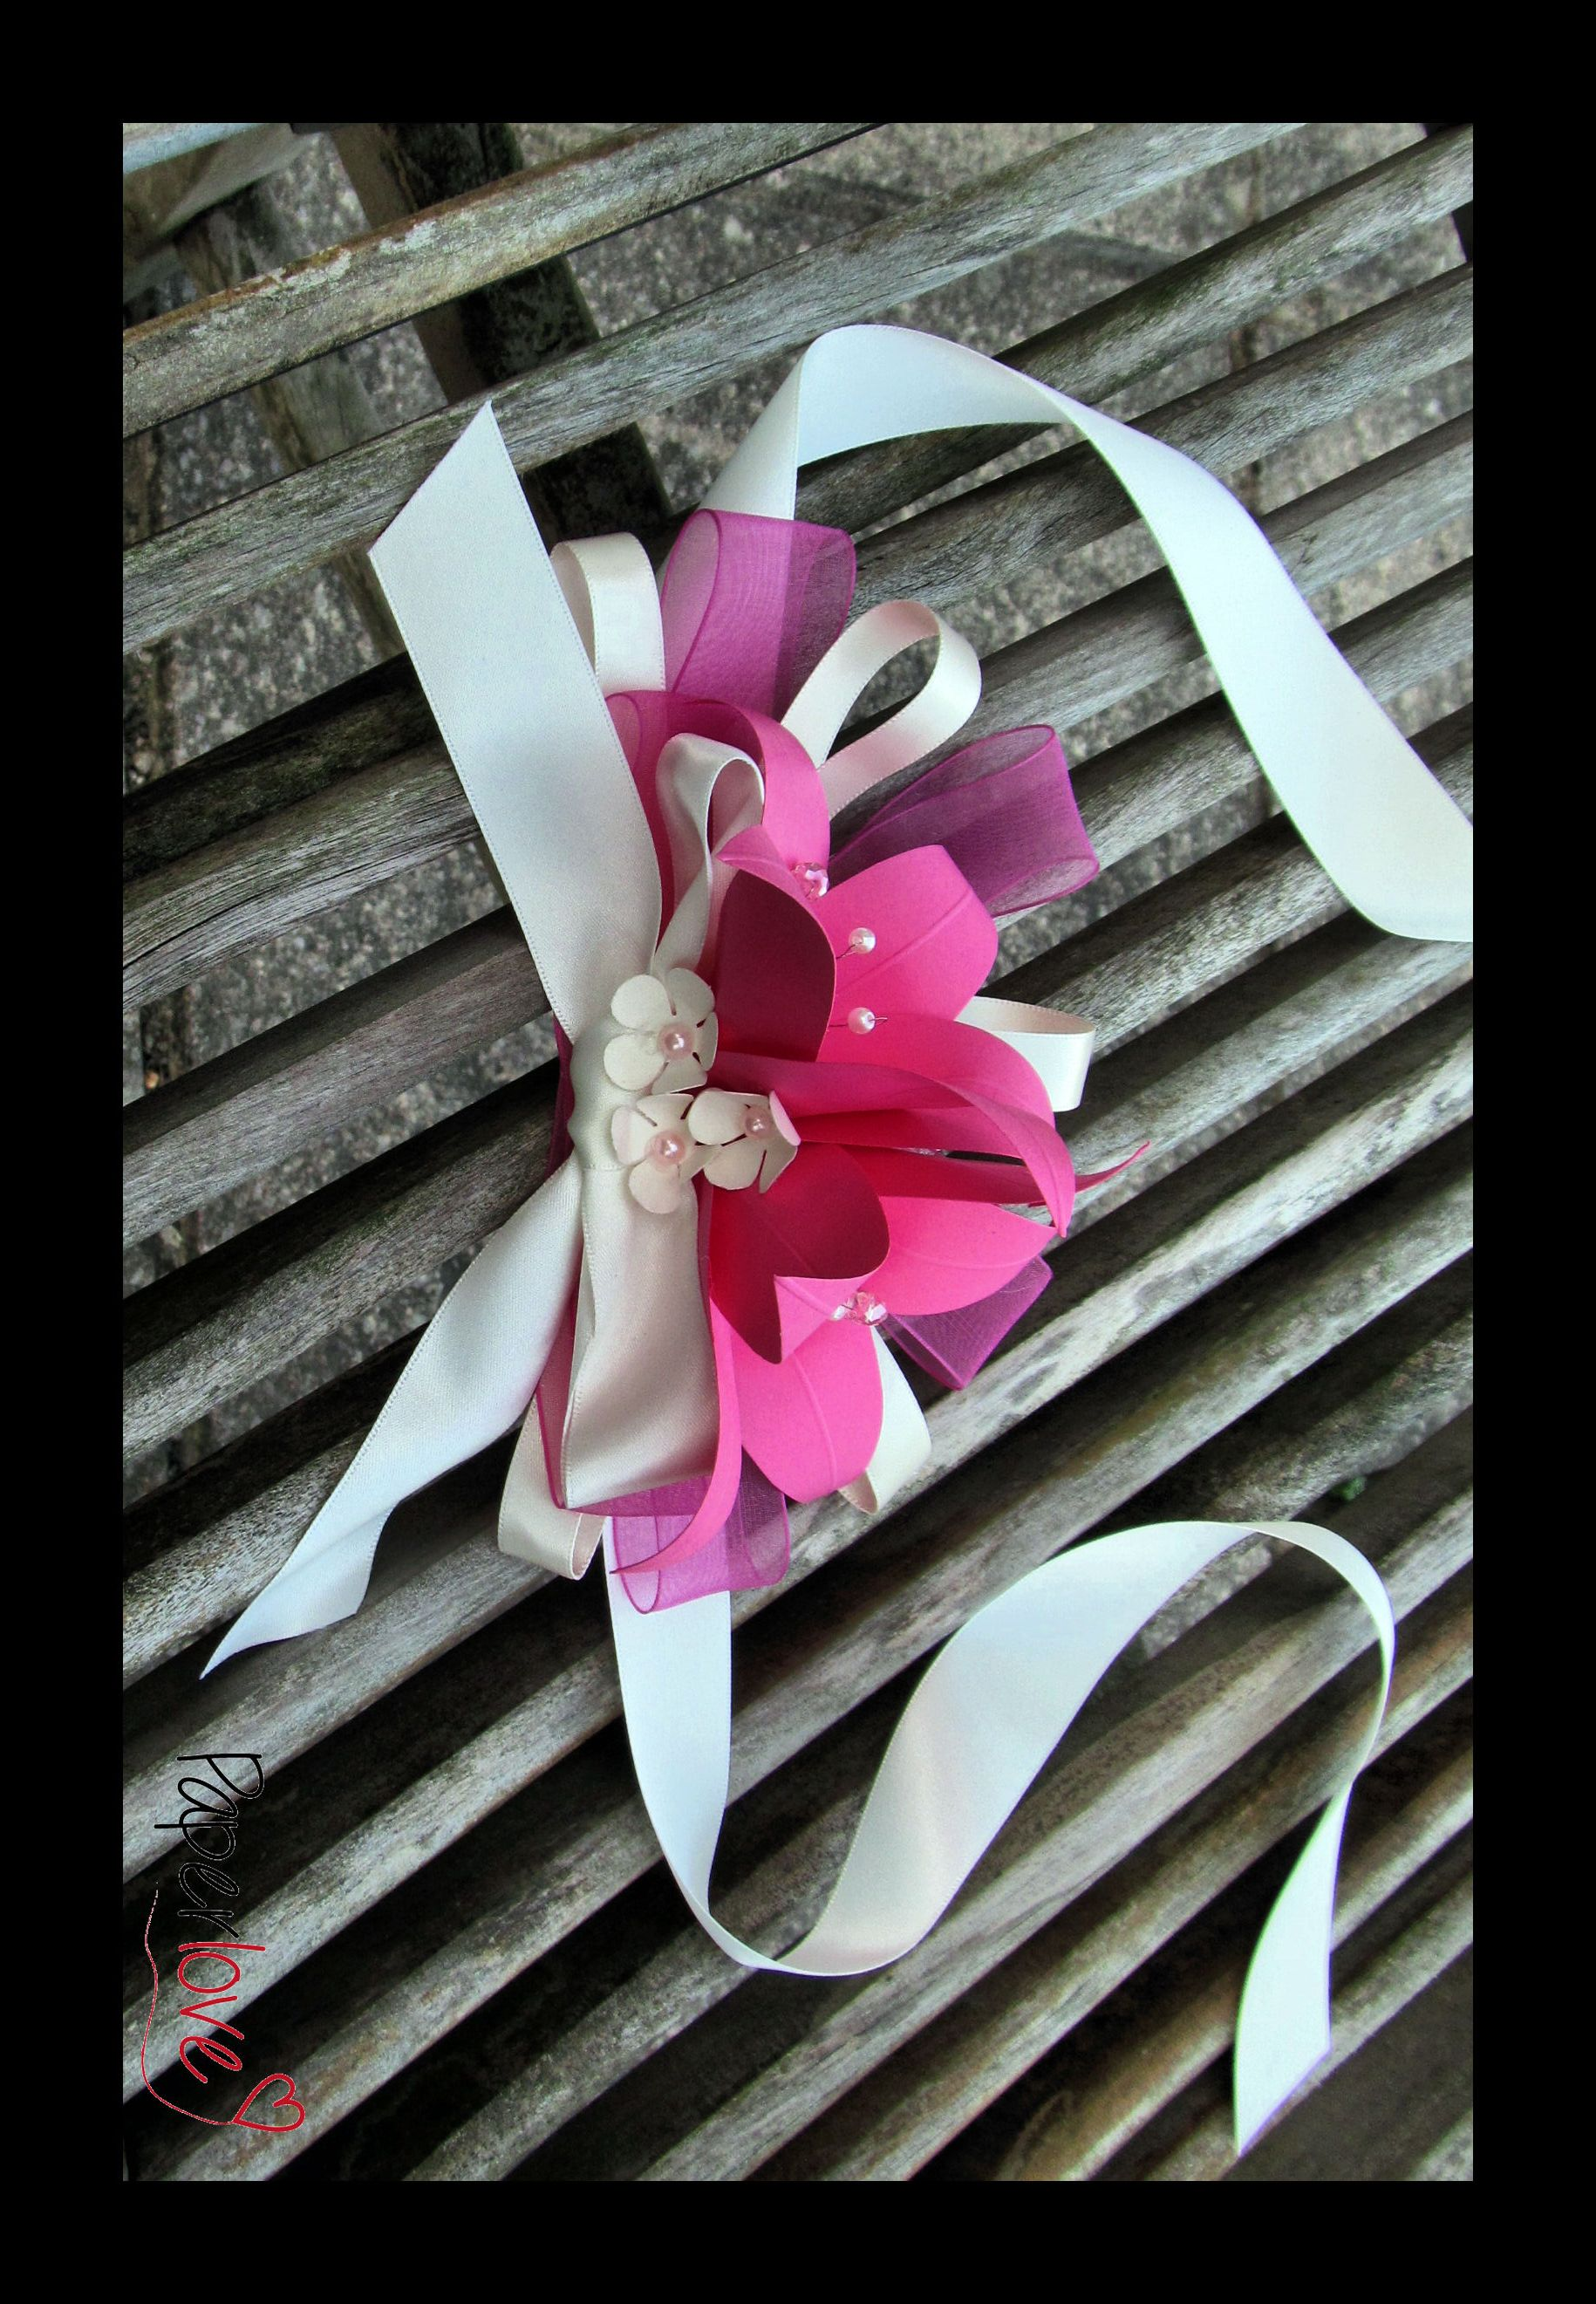 hot pink lily wrist corsage https://www.facebook.com/flowers.eb